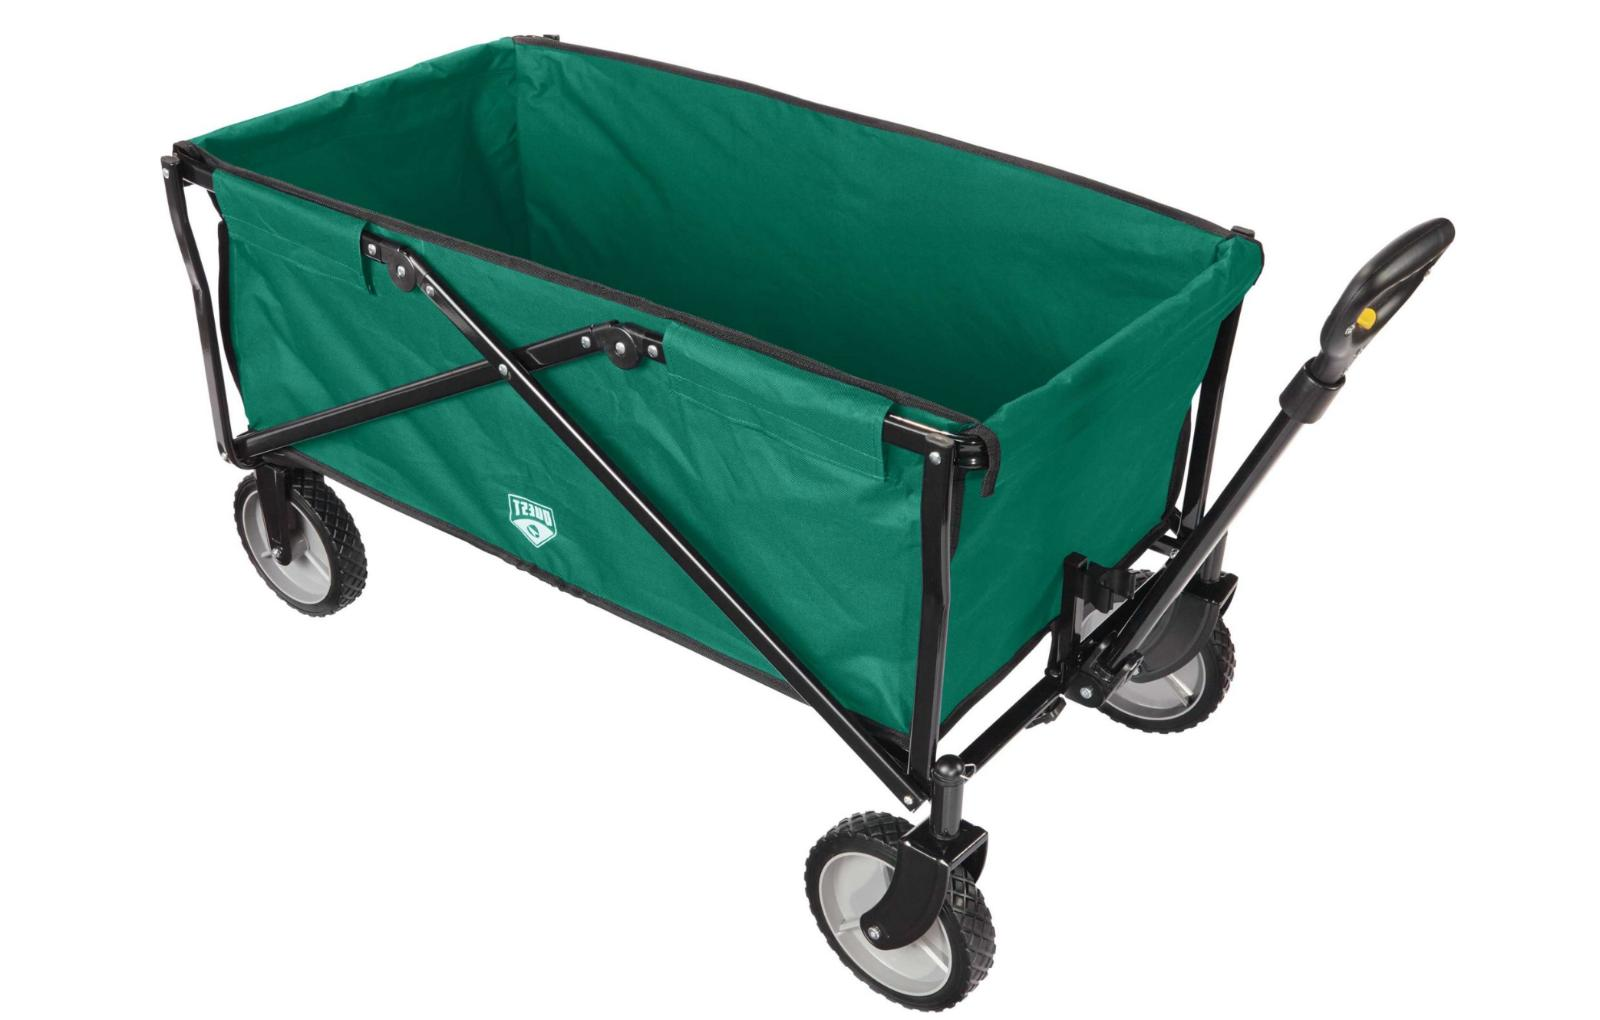 Quest Foldable Lightweight Utility Wagon Outdoor Camping